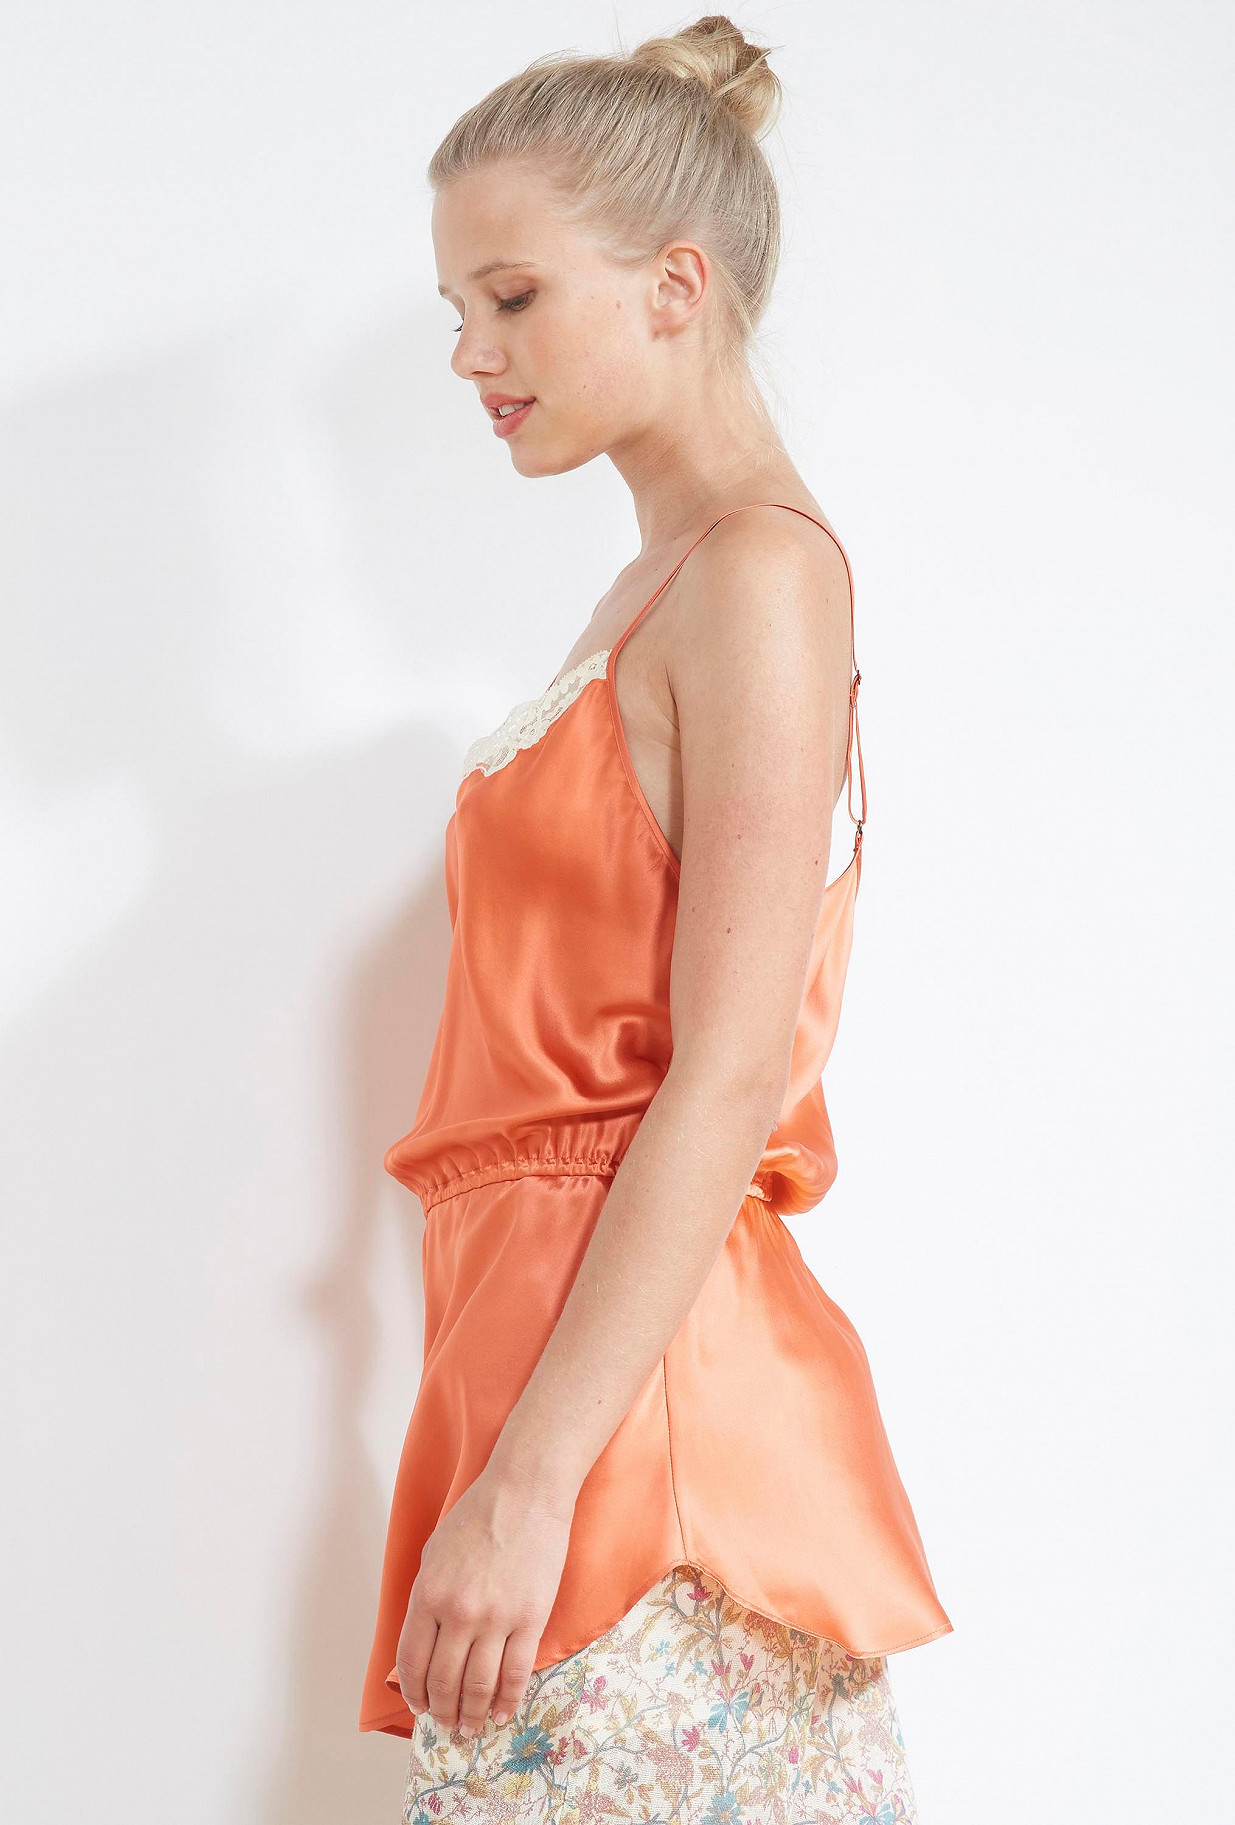 clothes store TOP  Sirop french designer fashion Paris